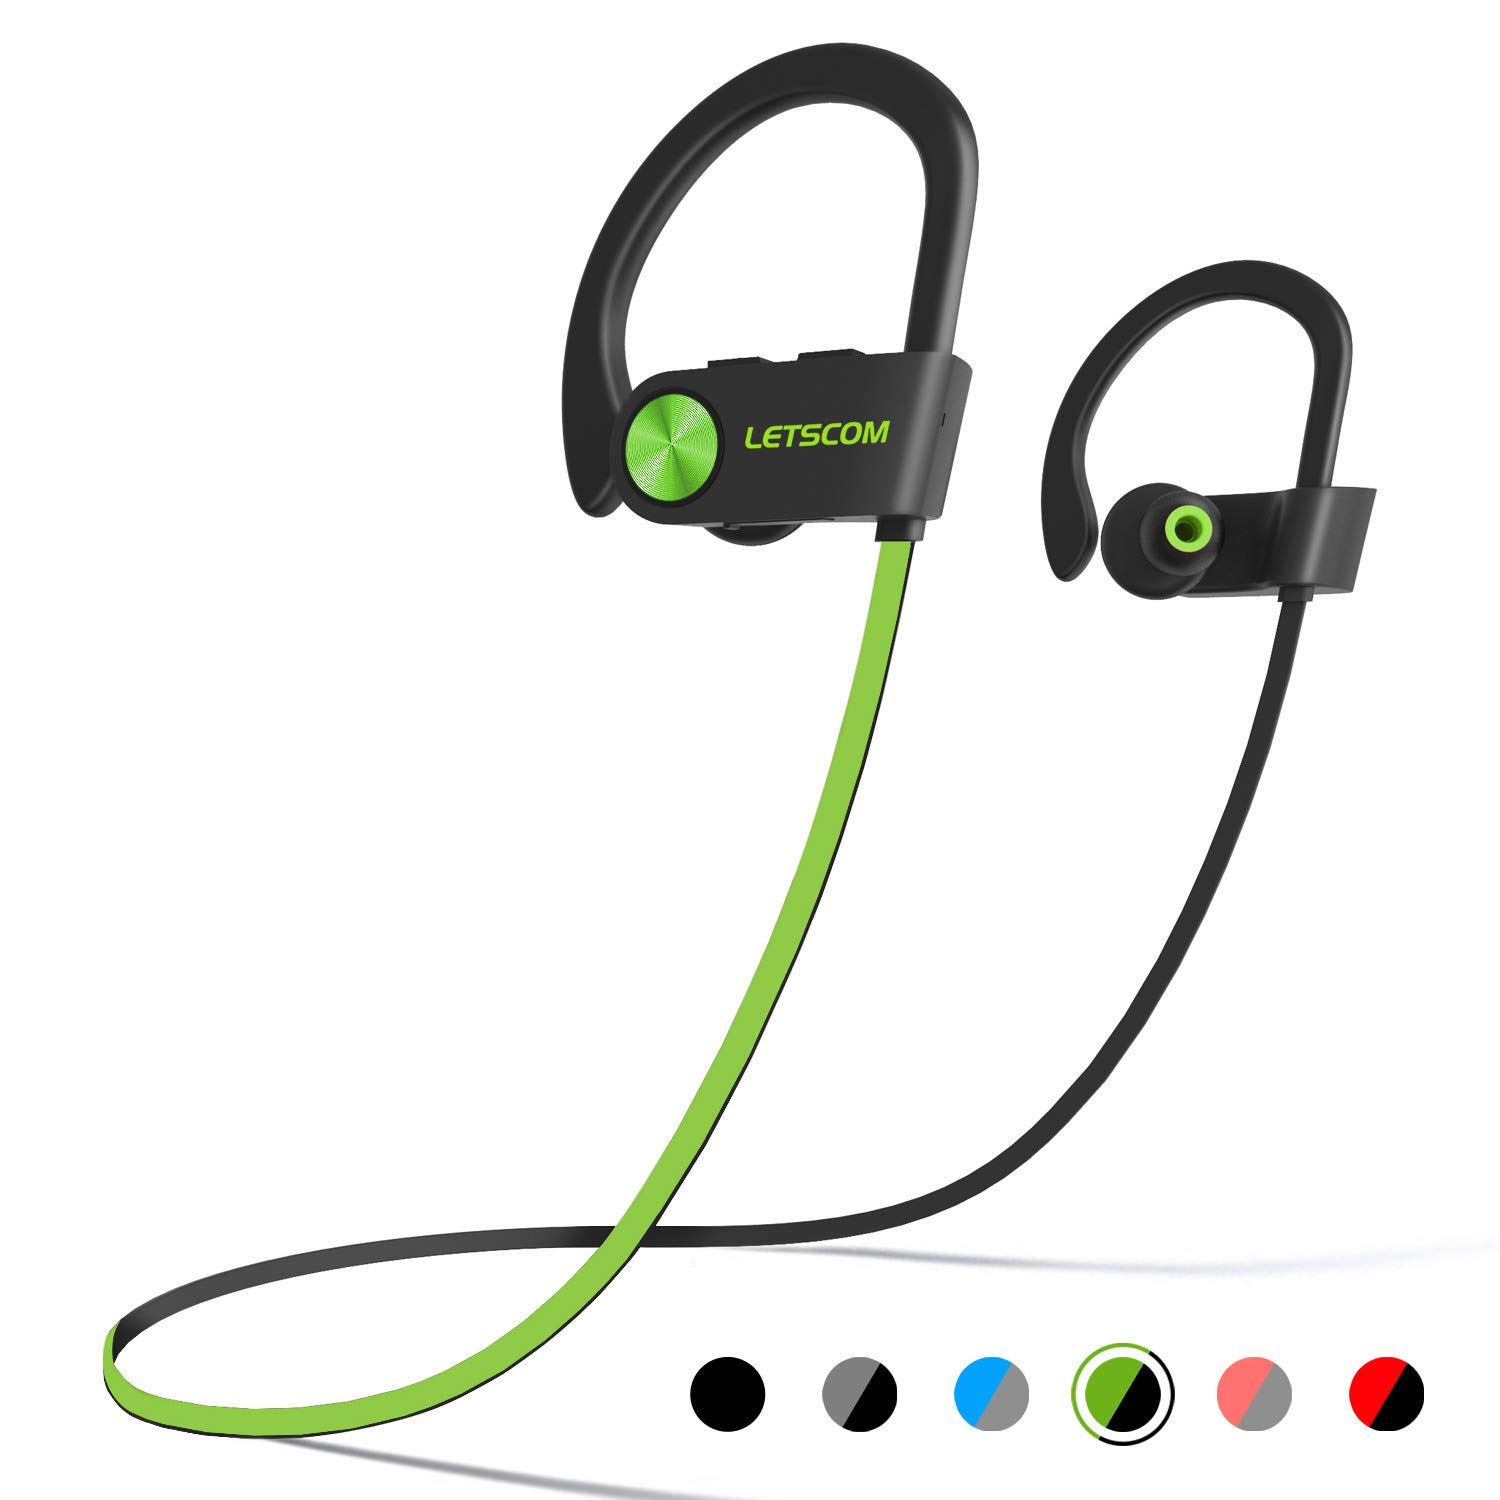 Wireless earbuds Letscom